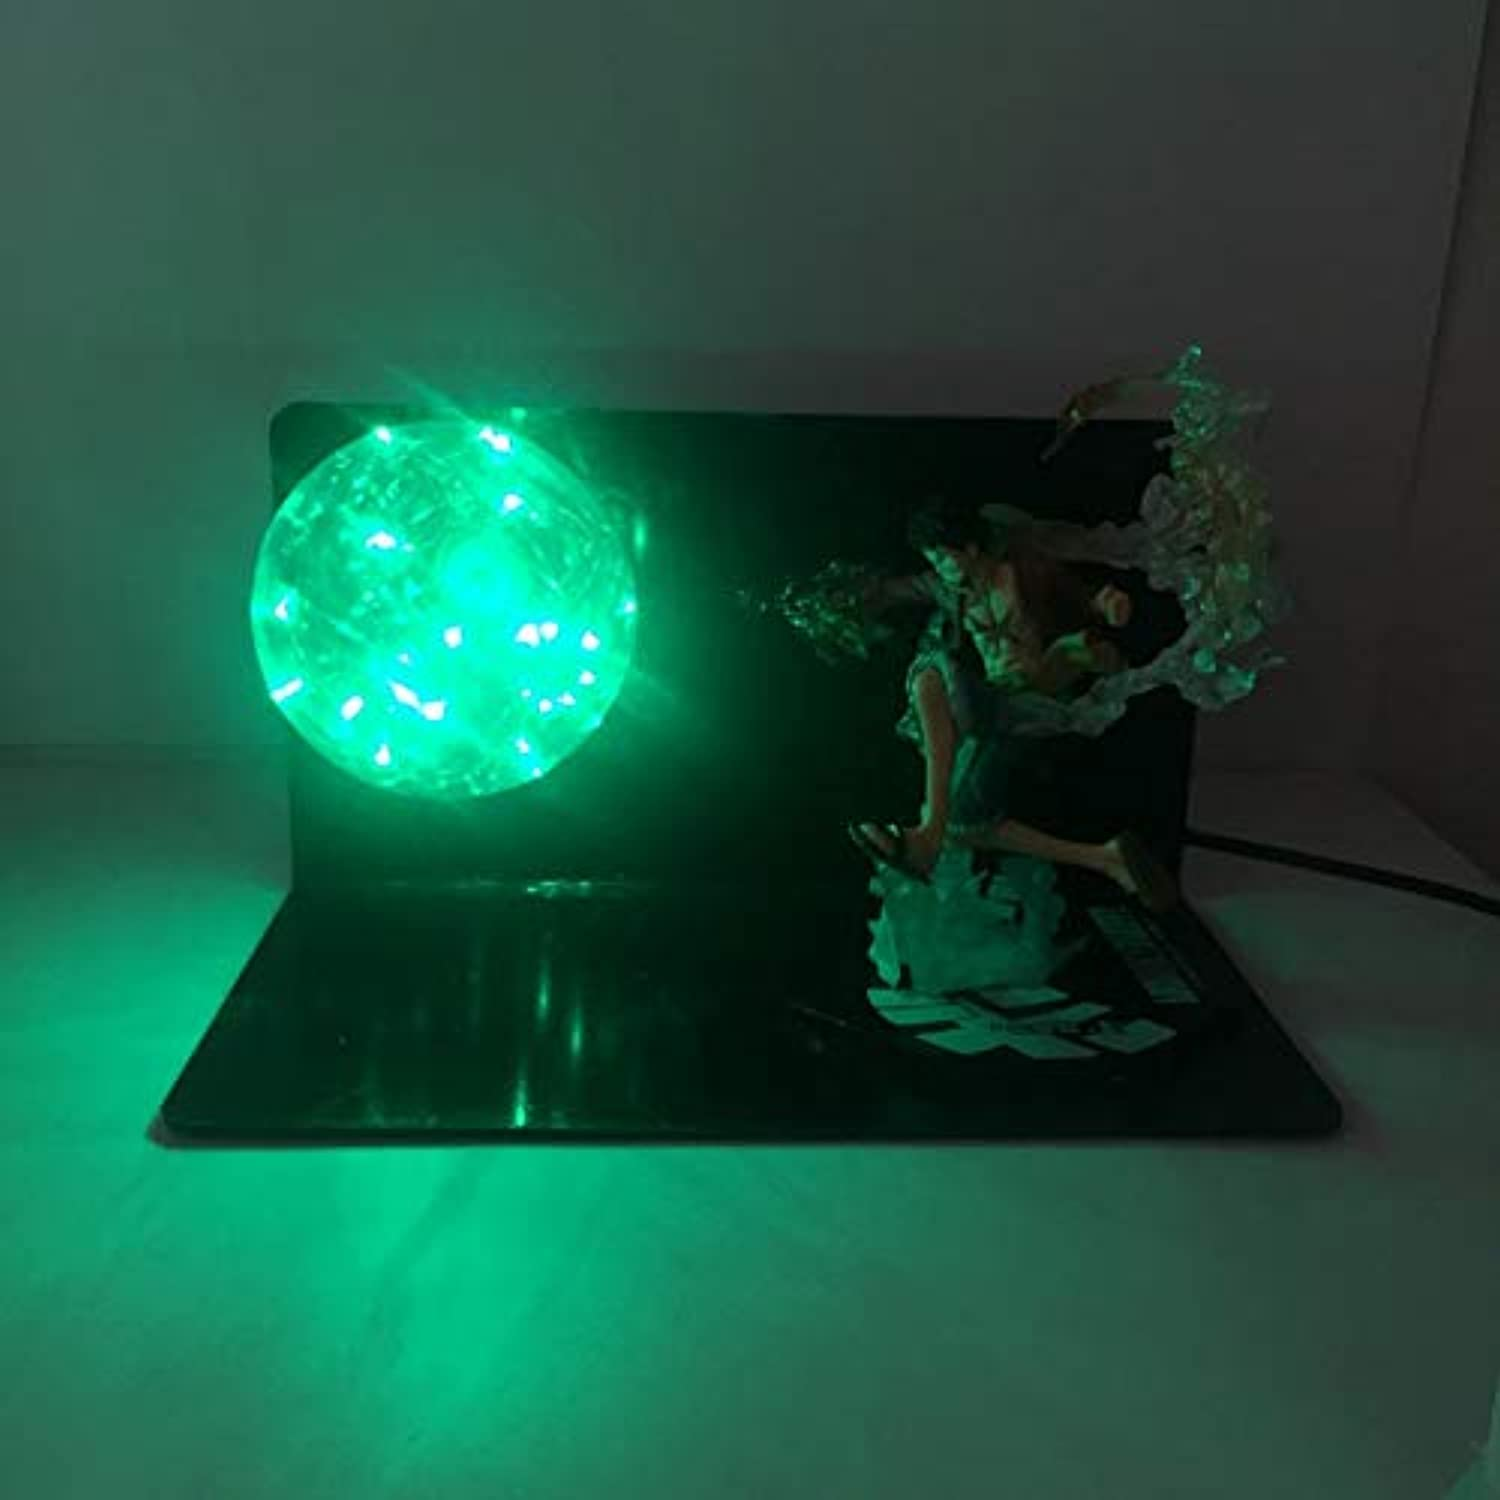 Dragon Ball LightKreative Anime handgefertigte One Piece LED Auge Lampe Ornamente Puppe Modell Tischlampe, grün